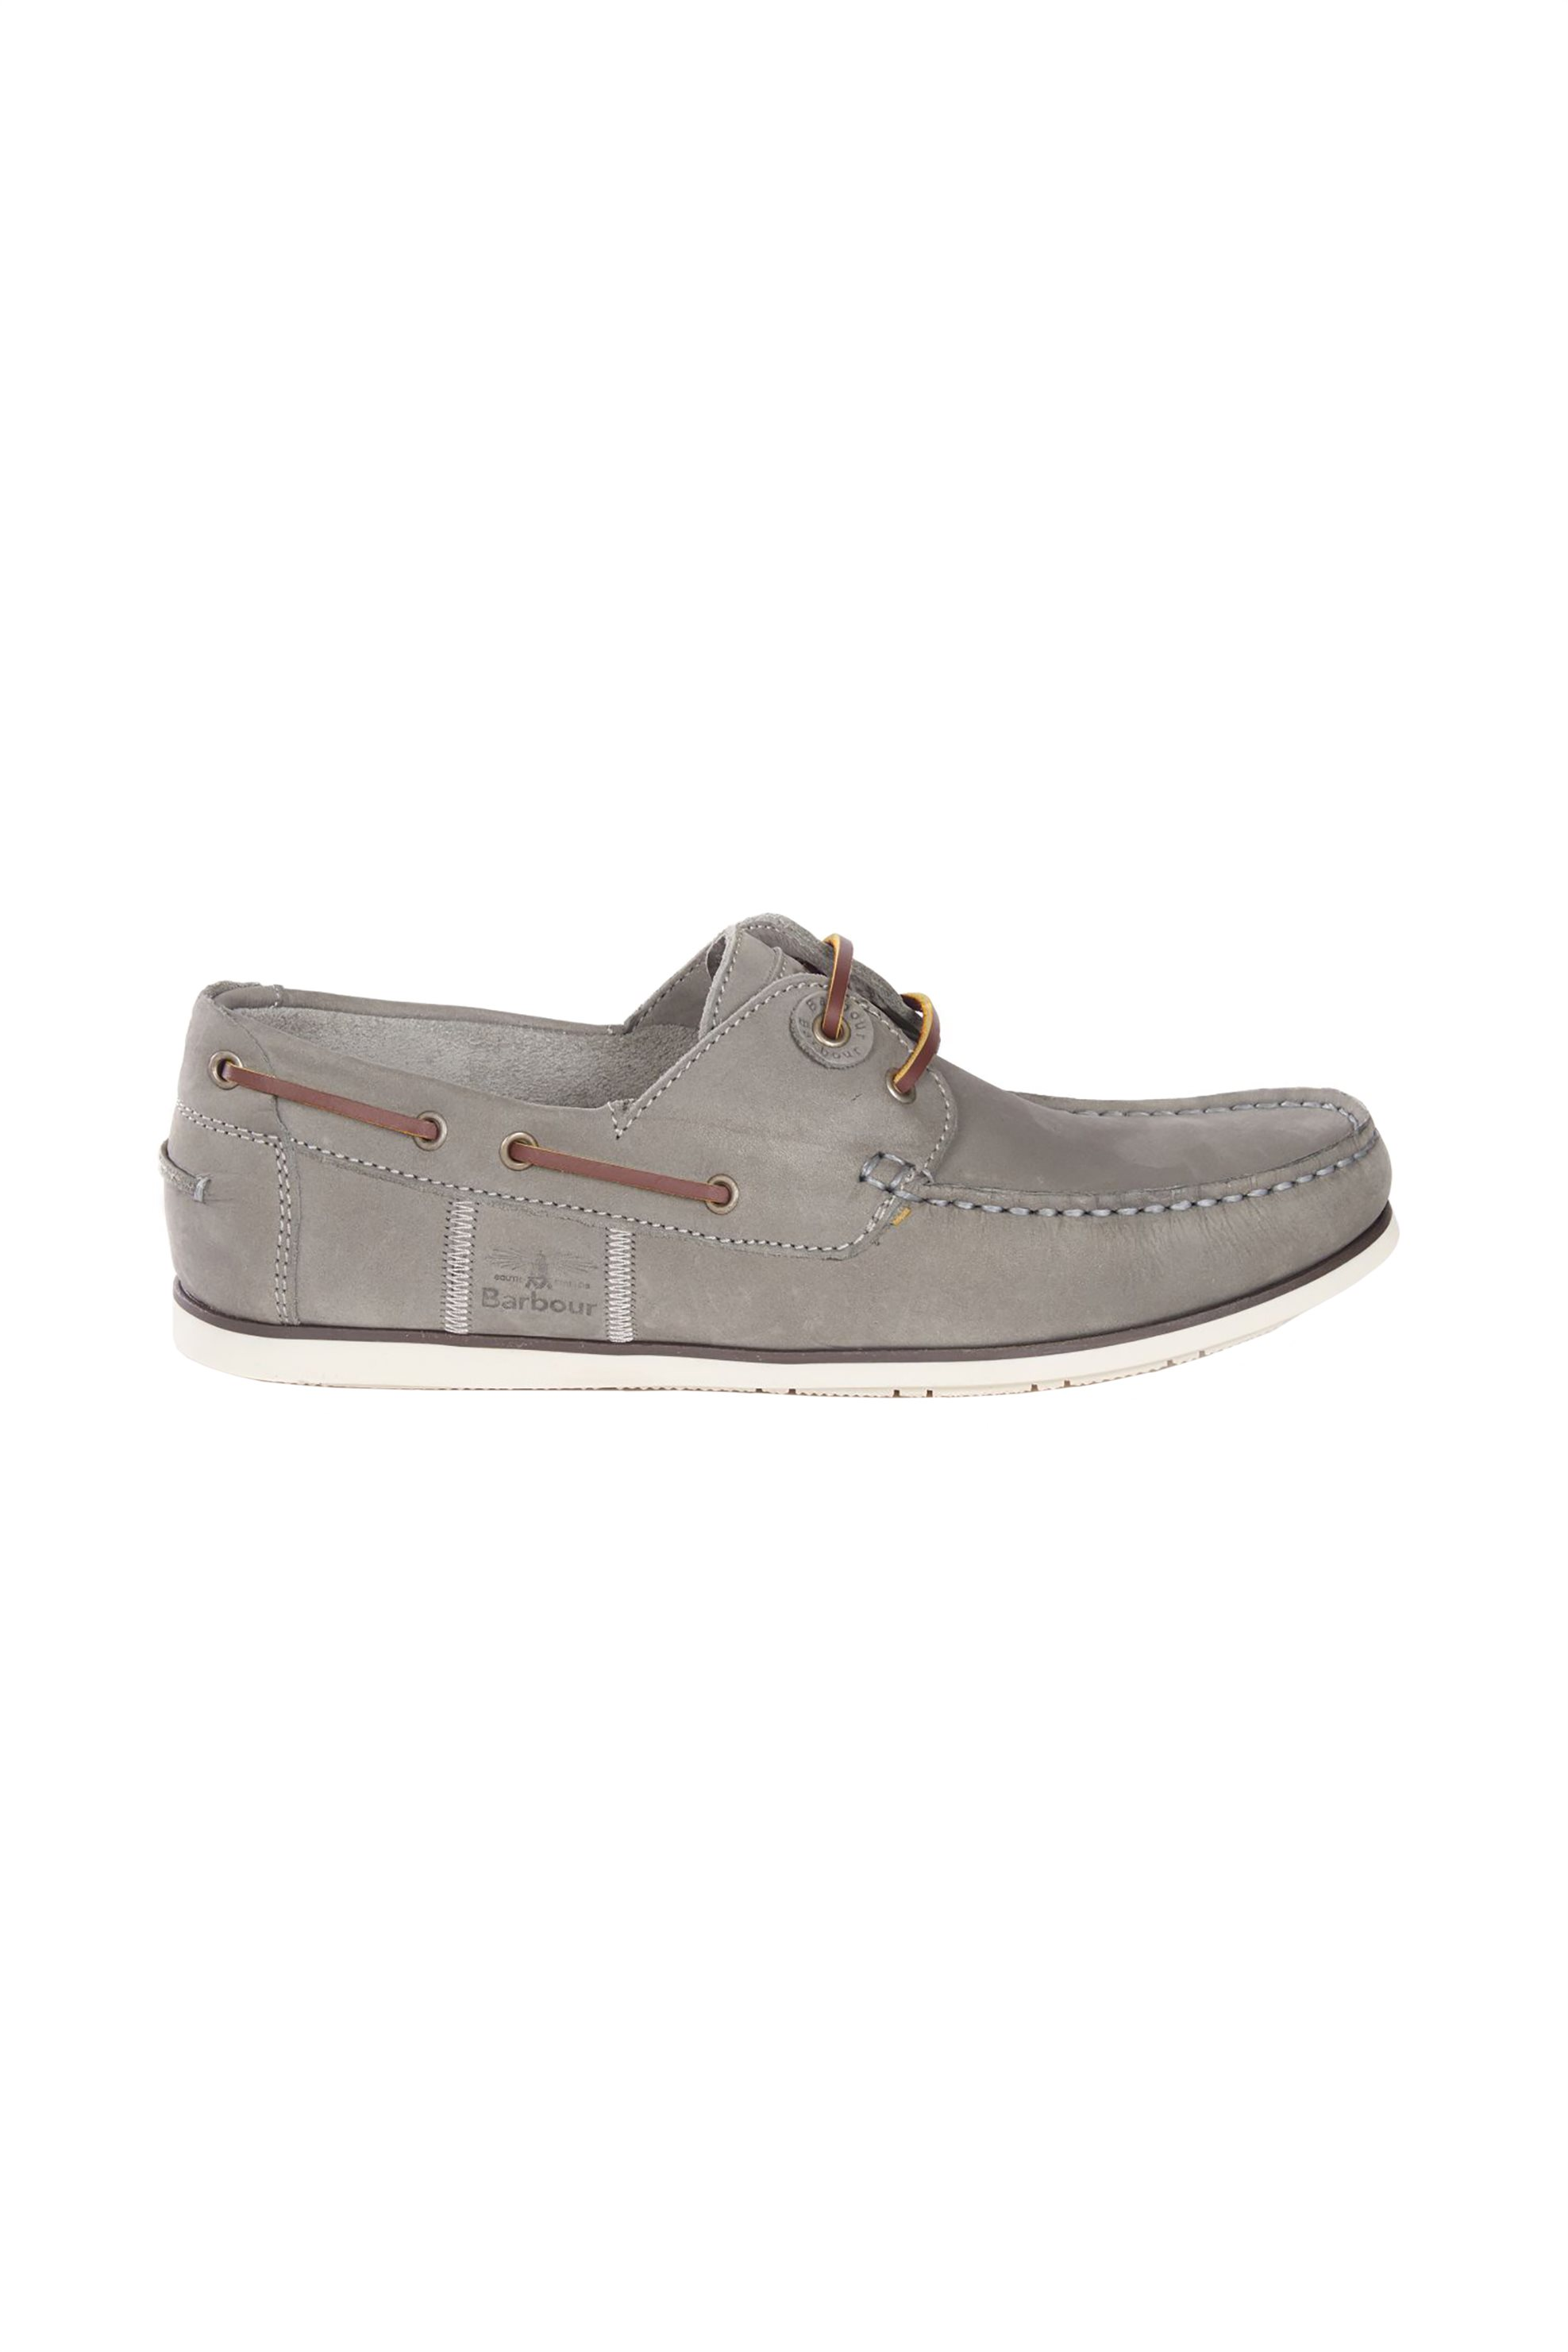 c61469f039e Notos Barbour ανδρικά boat shoes Capstan – MFO0304 – Γκρι